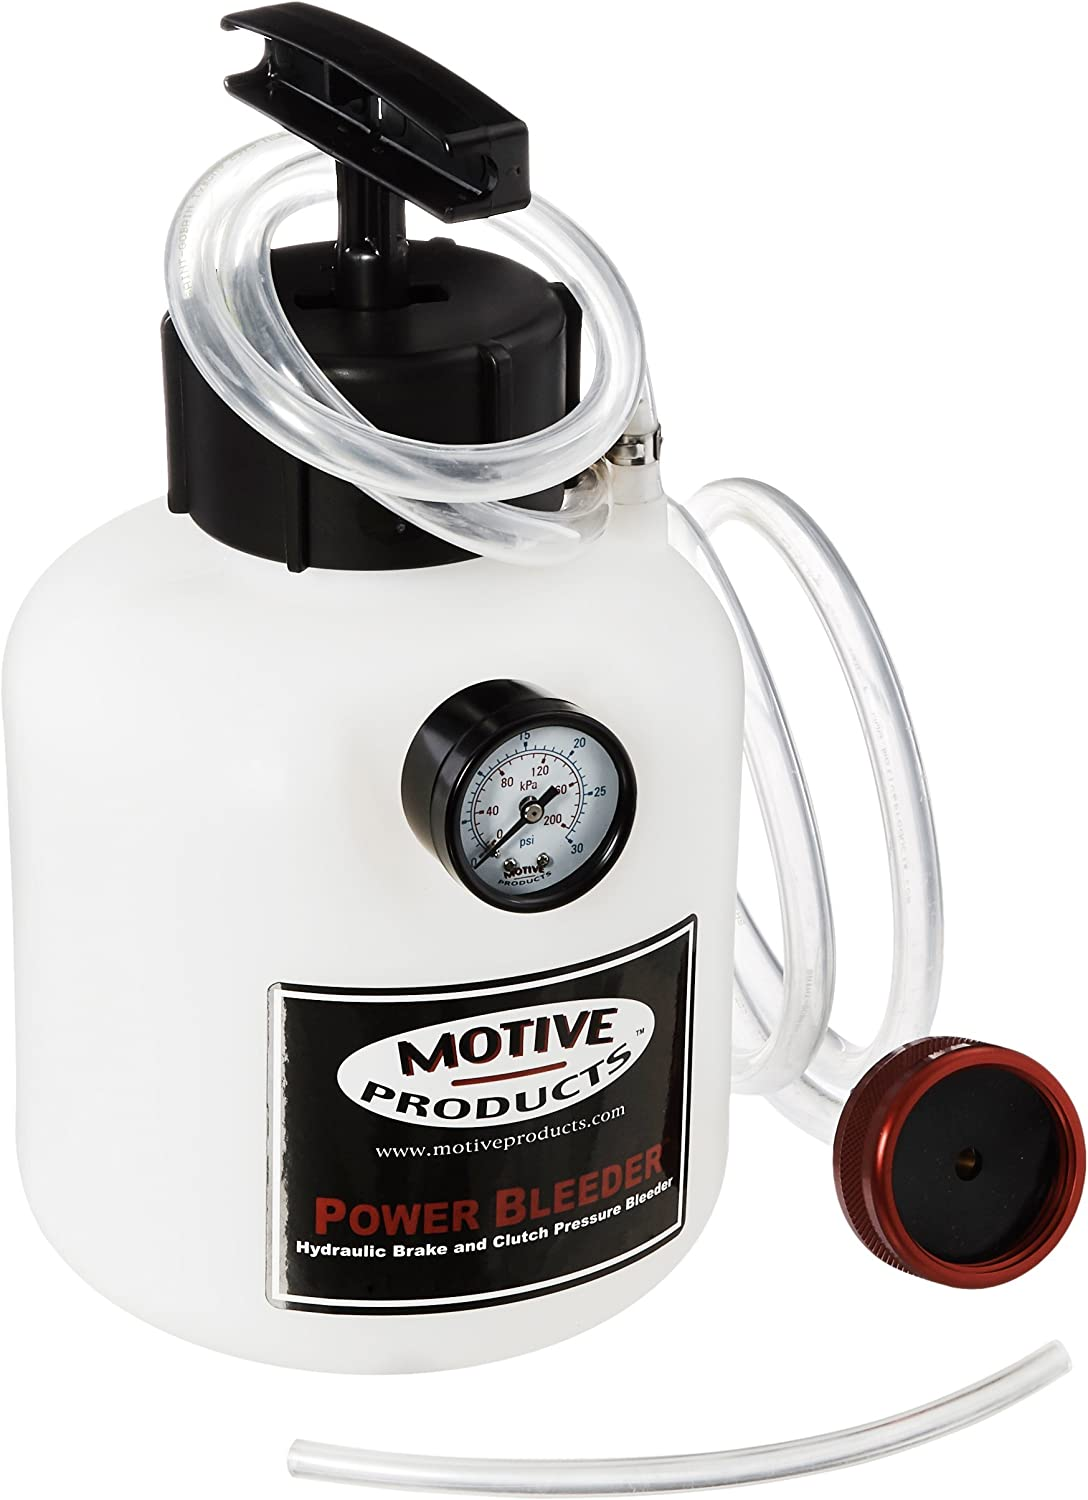 Motive BLACK LABEL Brake Power Bleeder Audi BMW Porsche VW European Adapter 0109